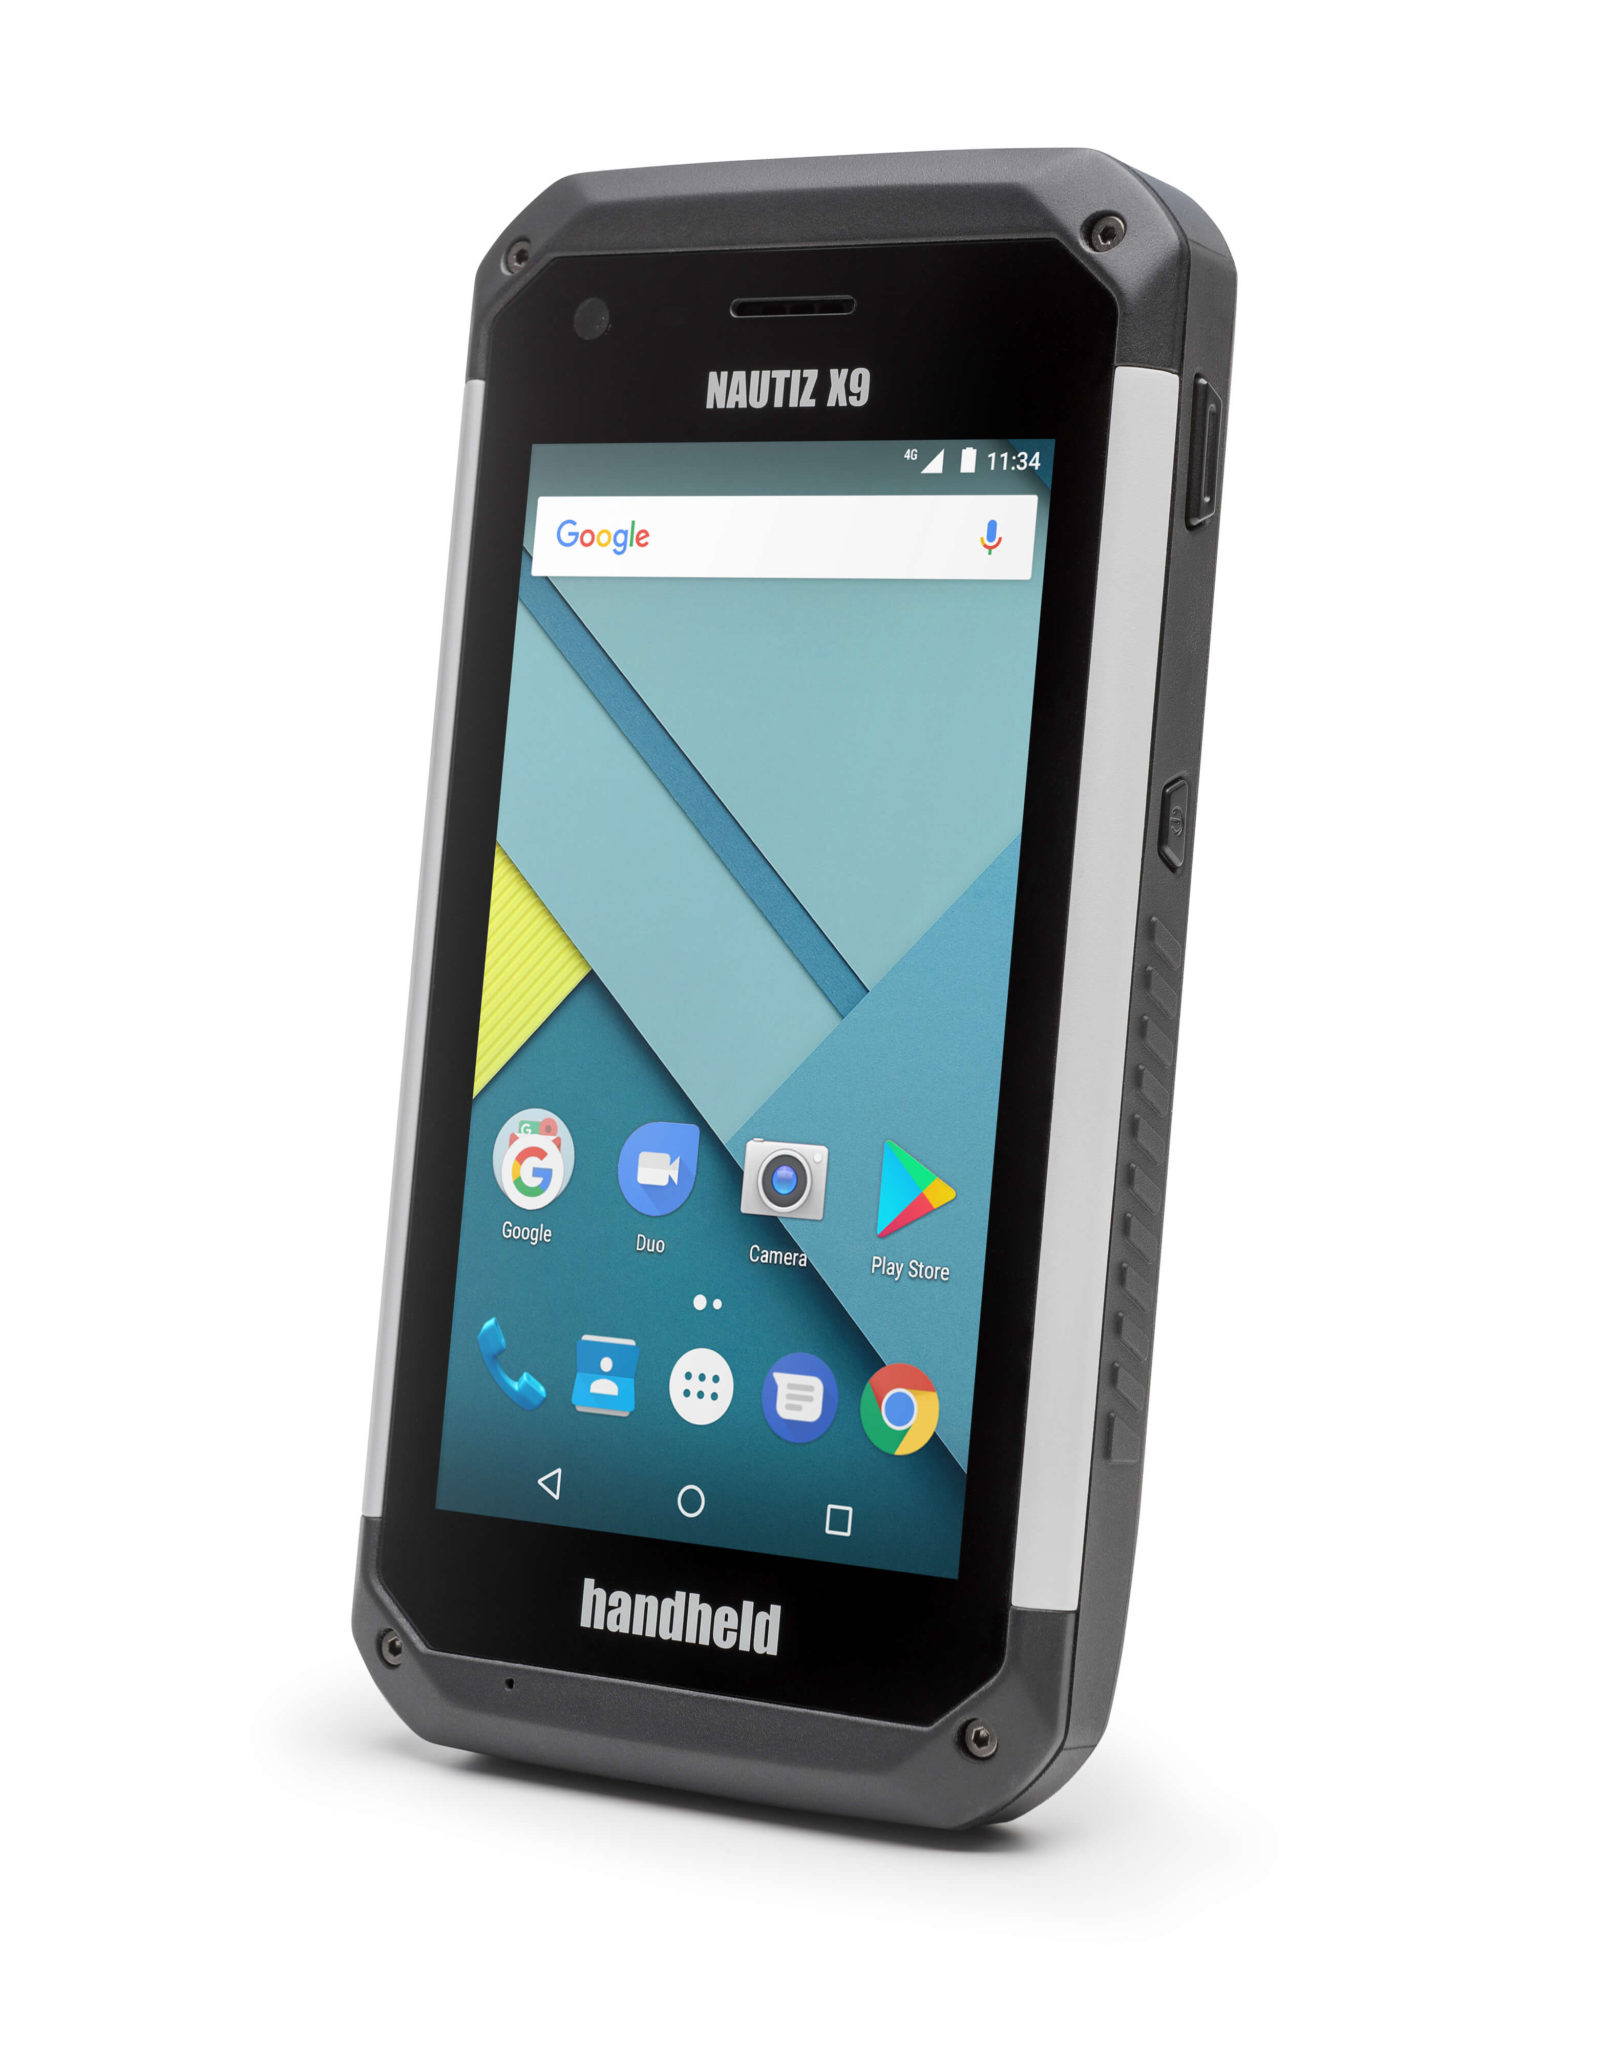 Nautiz-X9-handheld-rugged-facing-left(1)